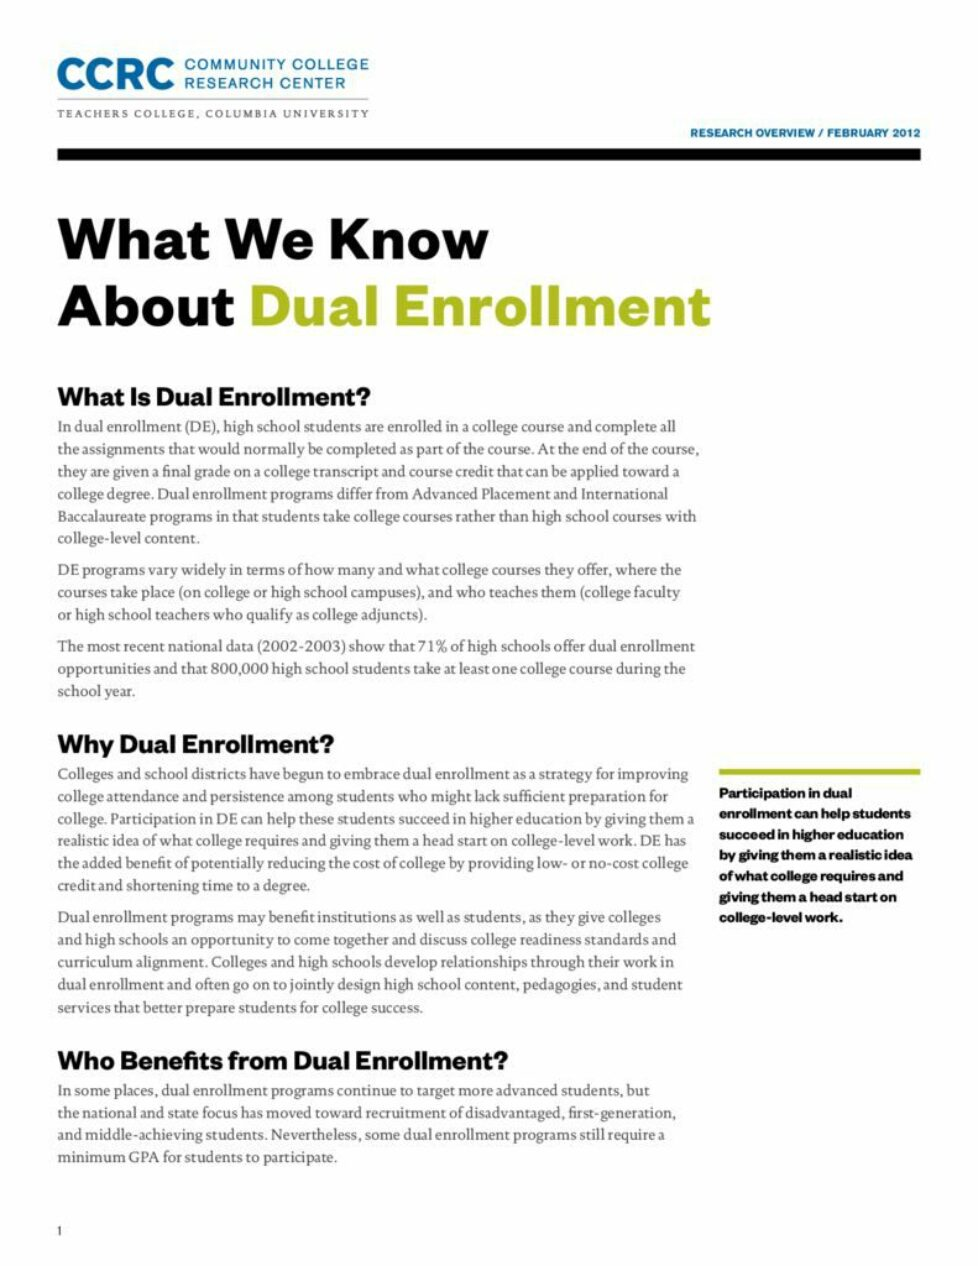 thumbnail of What We Know About Dual Enrollment: Research Overview